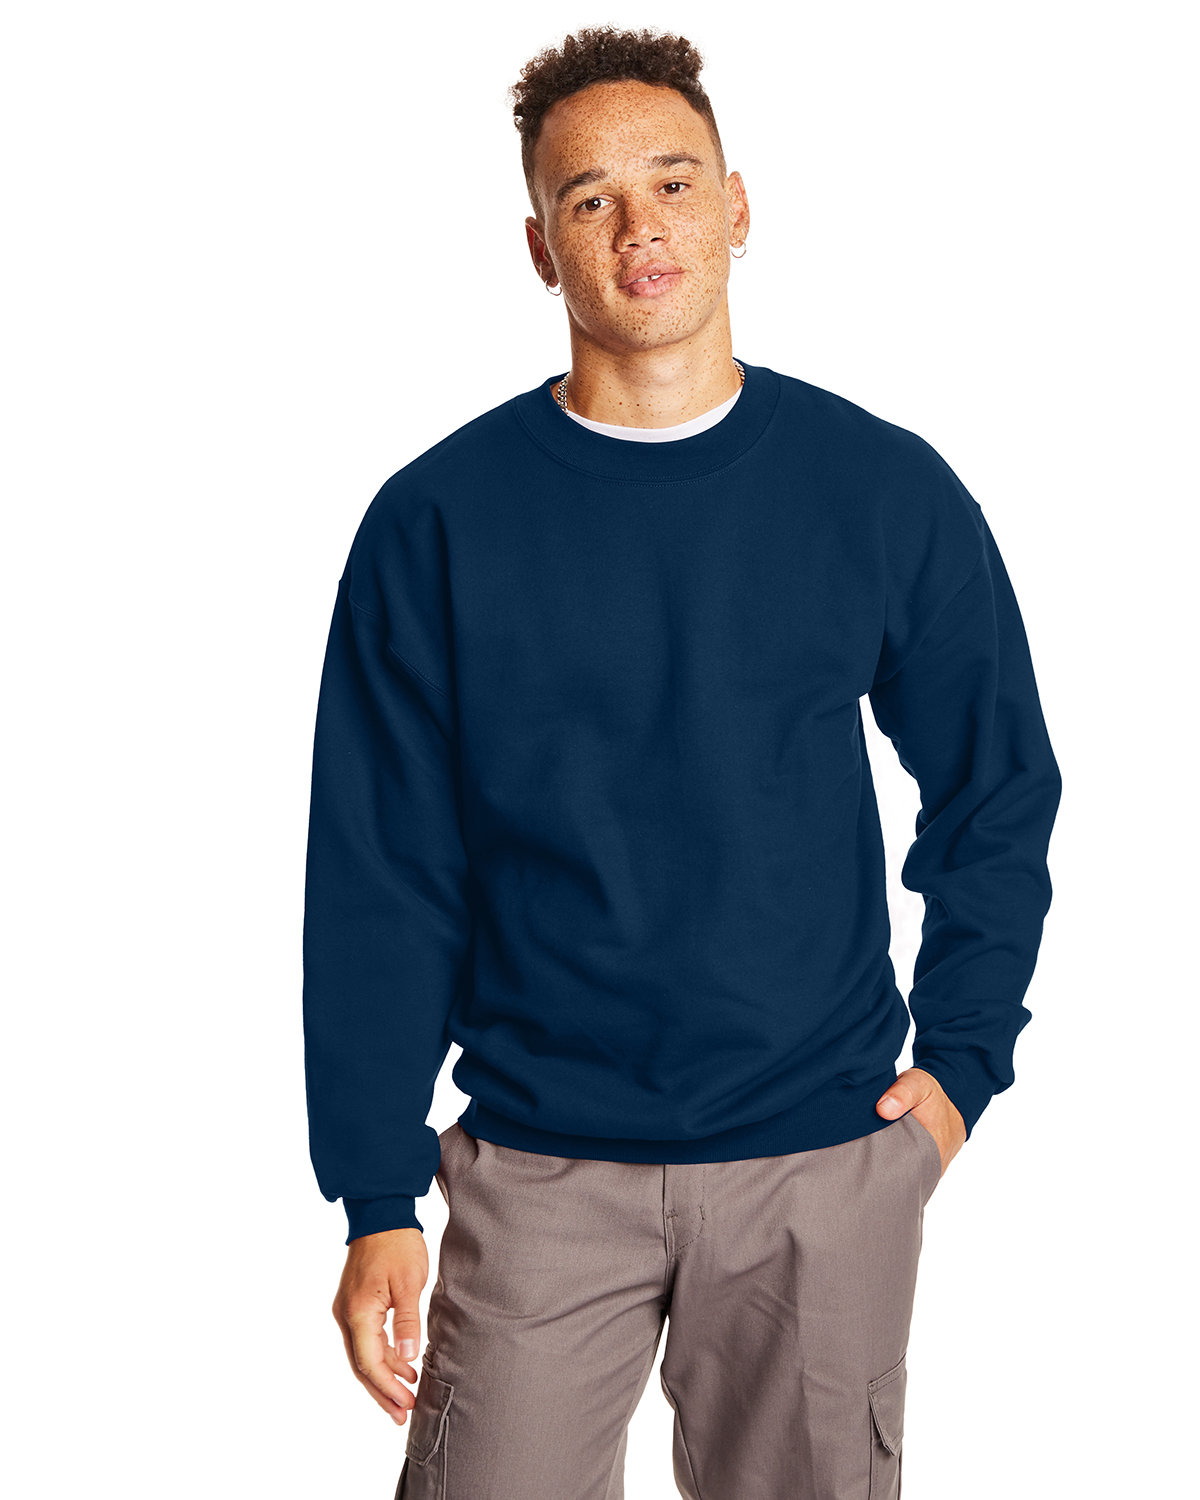 Hanes Adult Ultimate Cotton® 90/10 Fleece Crew NAVY